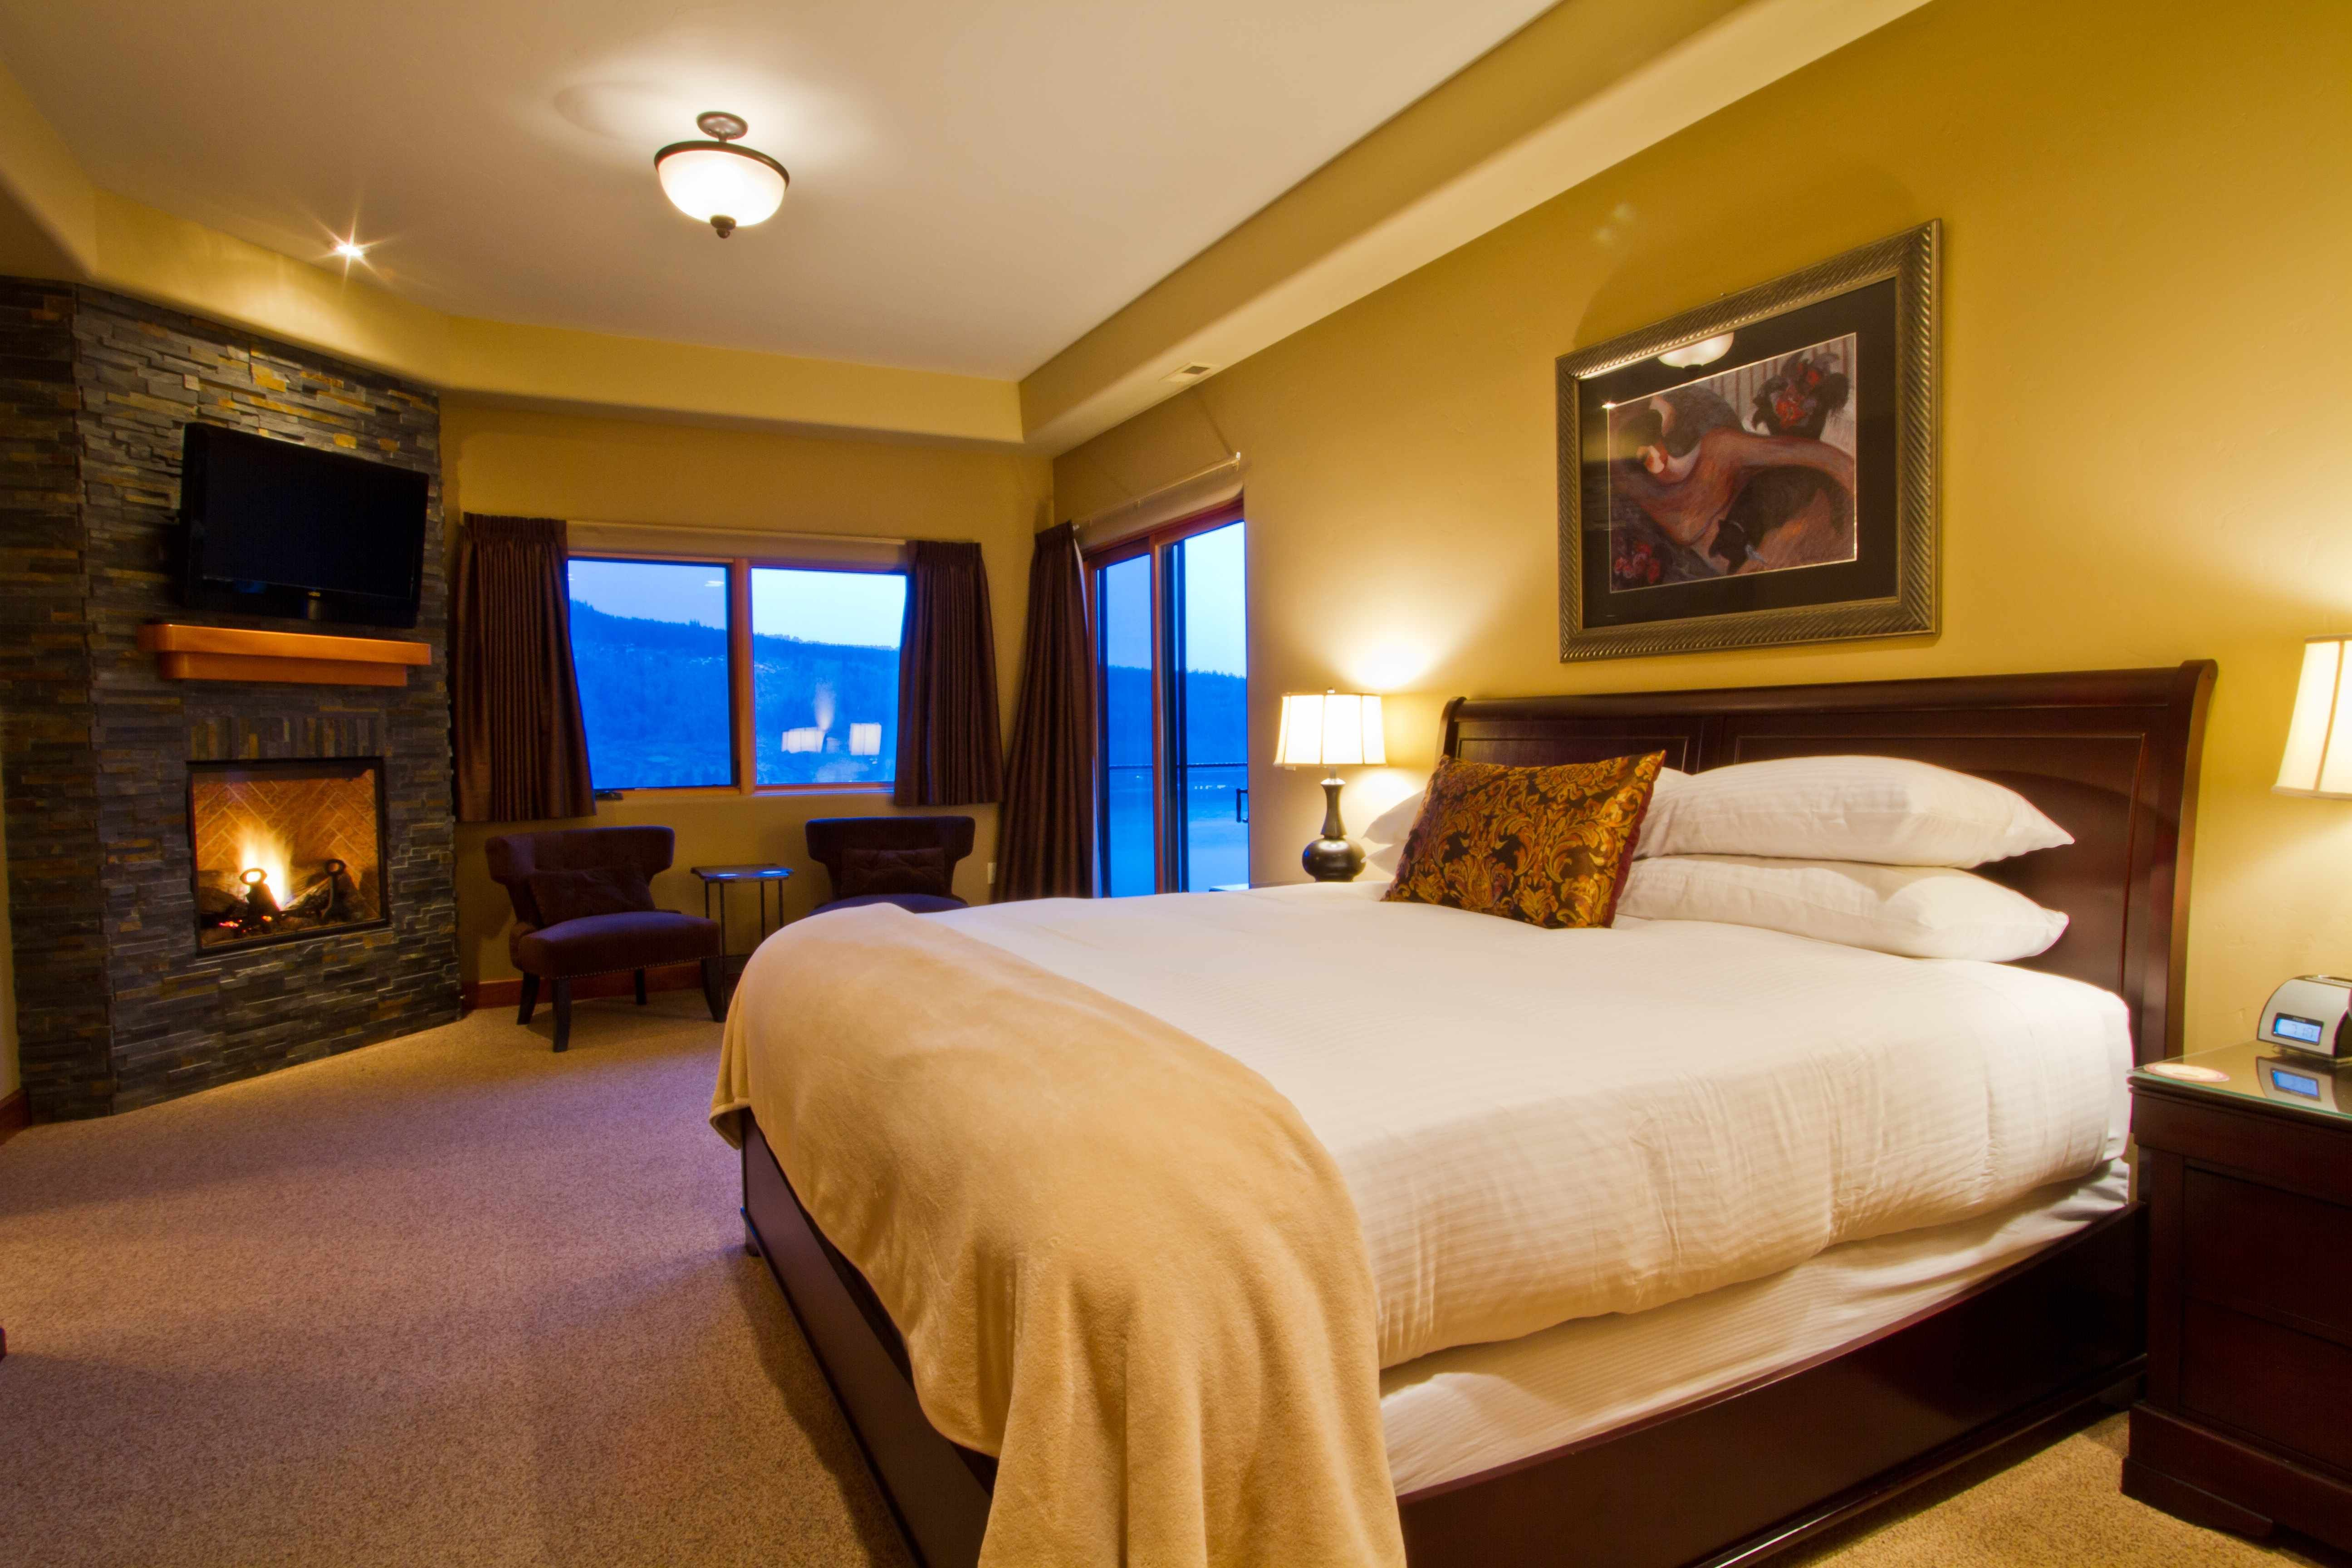 Our Penthouse Master suite features a large king size bed